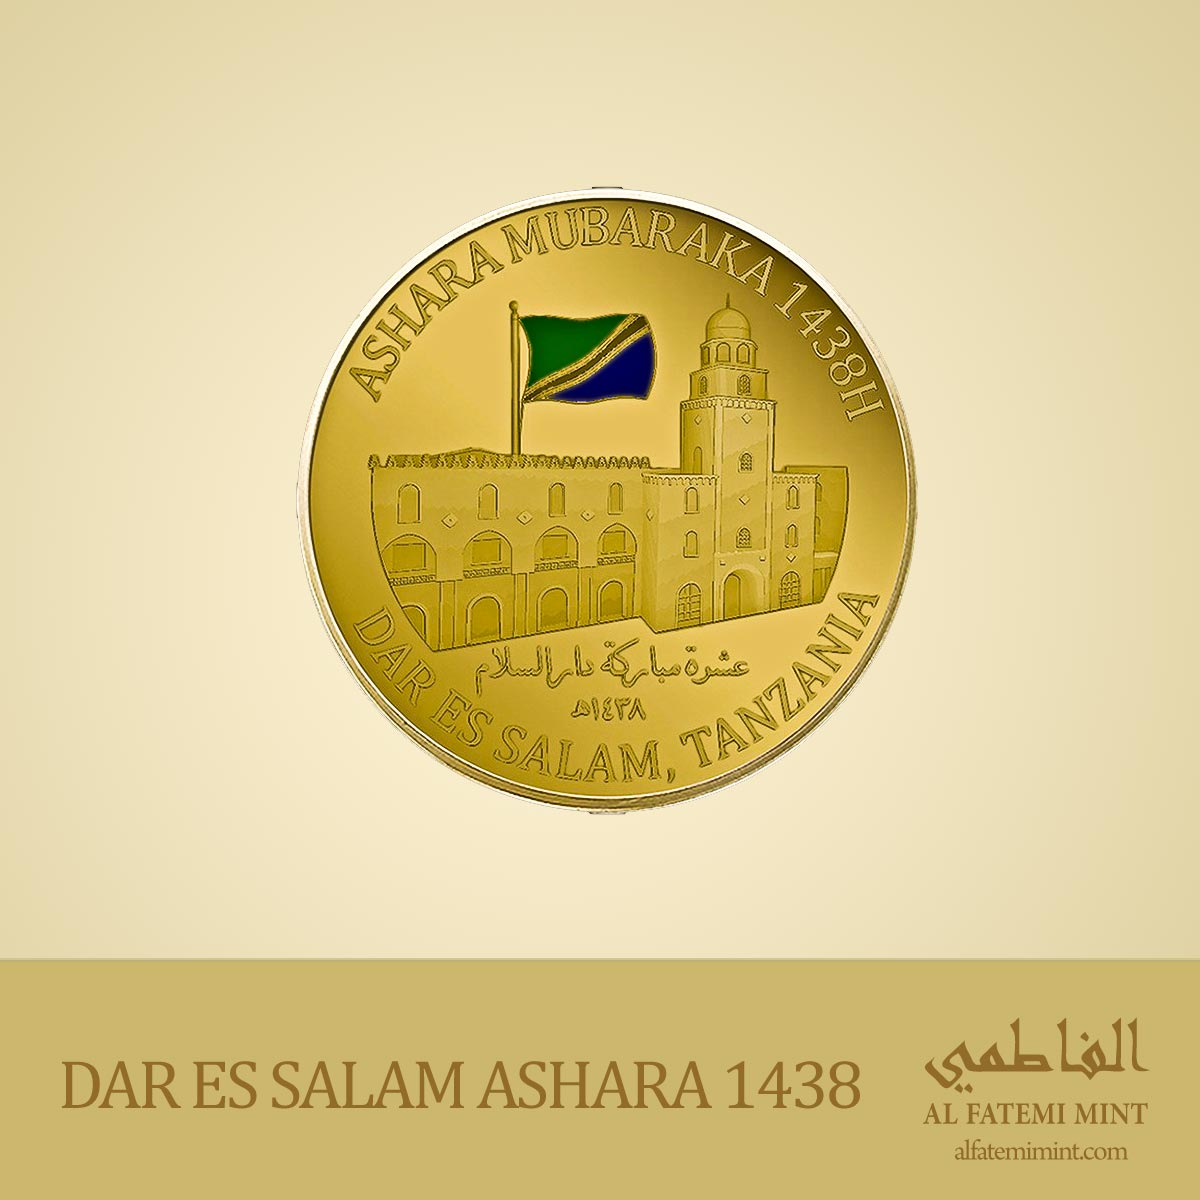 Ashara Dar Es Salam 1438 Proof Coin